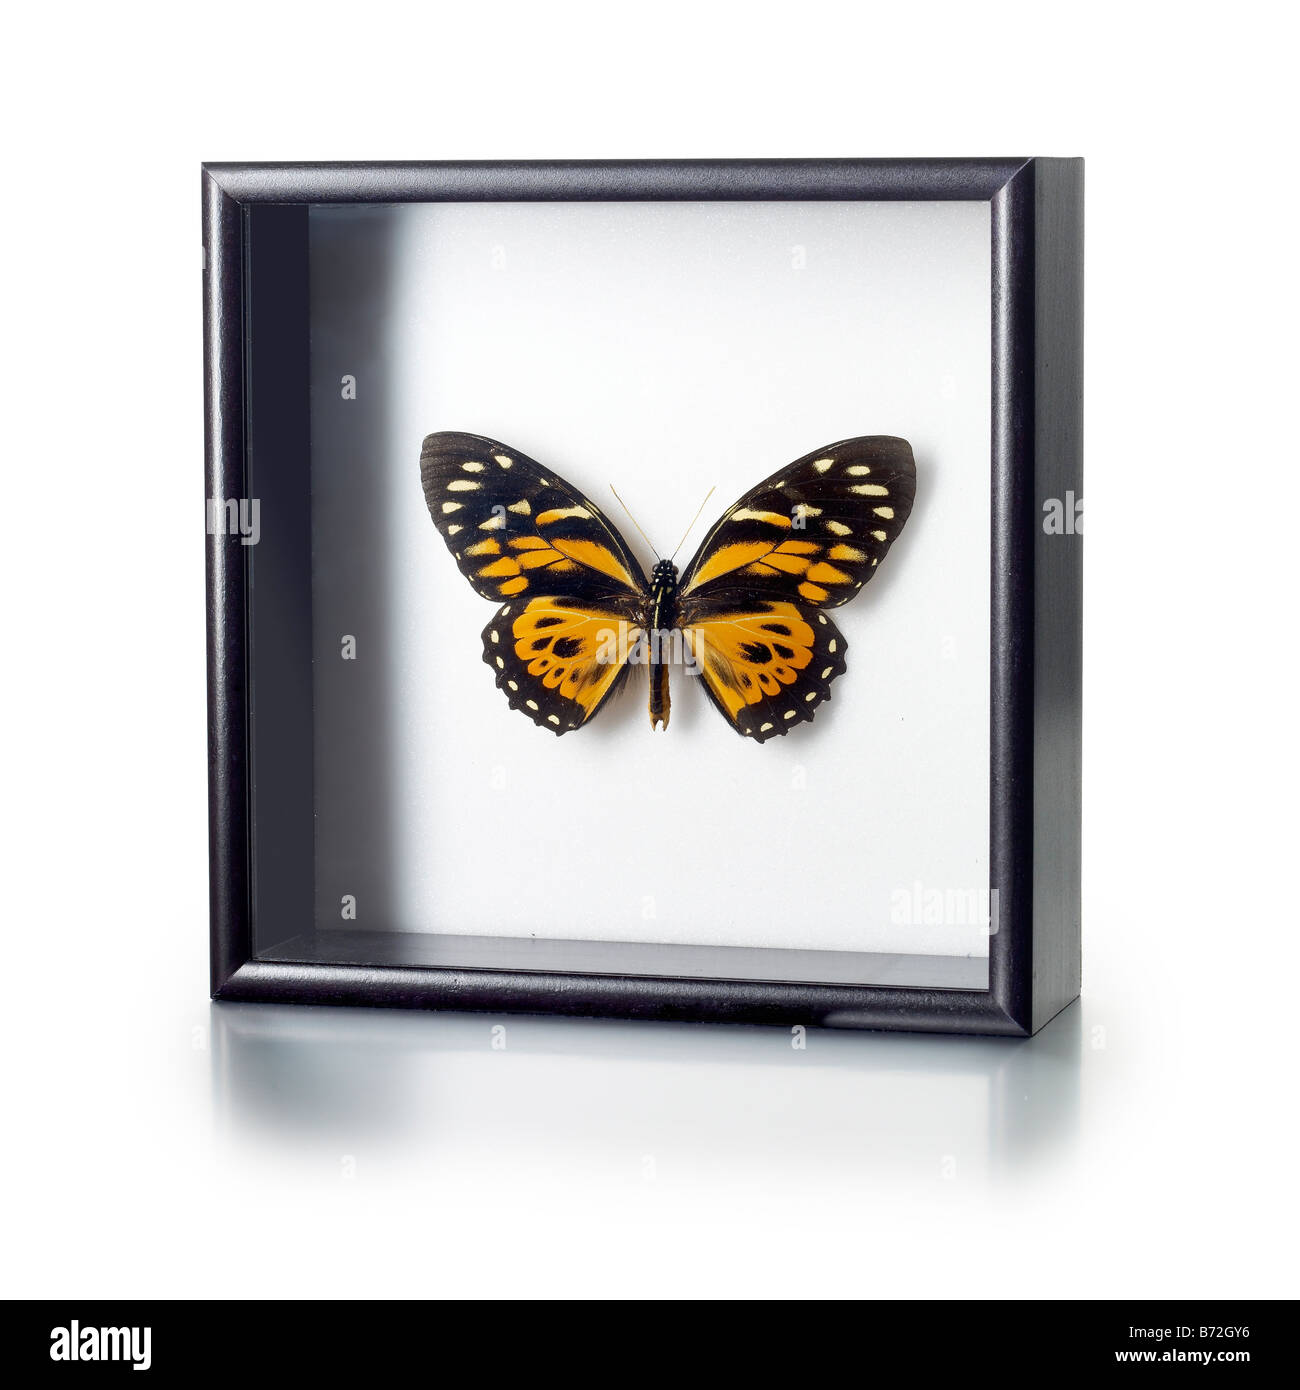 Framed Butterfly Stock Photos & Framed Butterfly Stock Images - Alamy